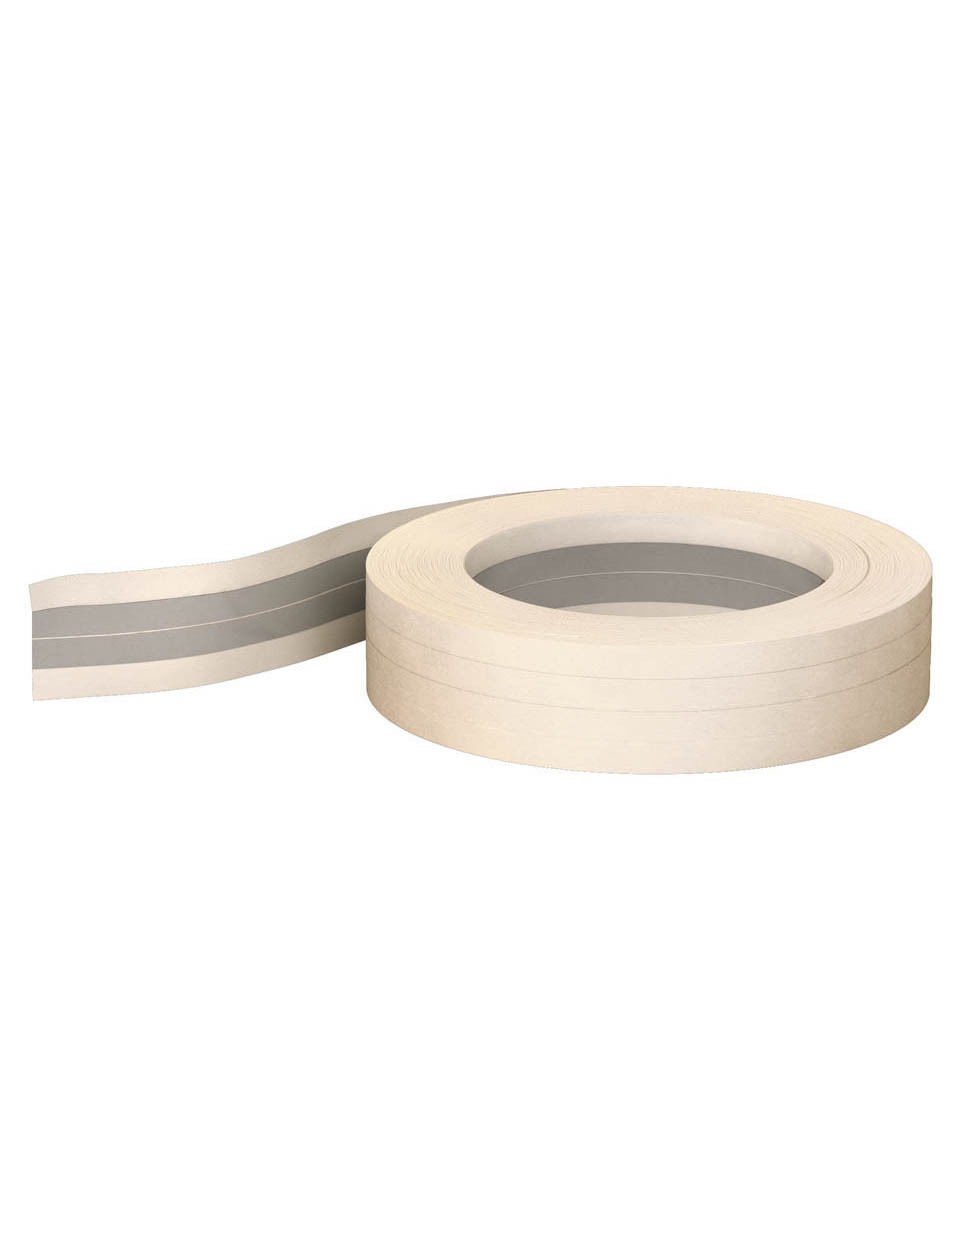 "SURE CORNER DRYWALL TAPE - 2"" x 100'"